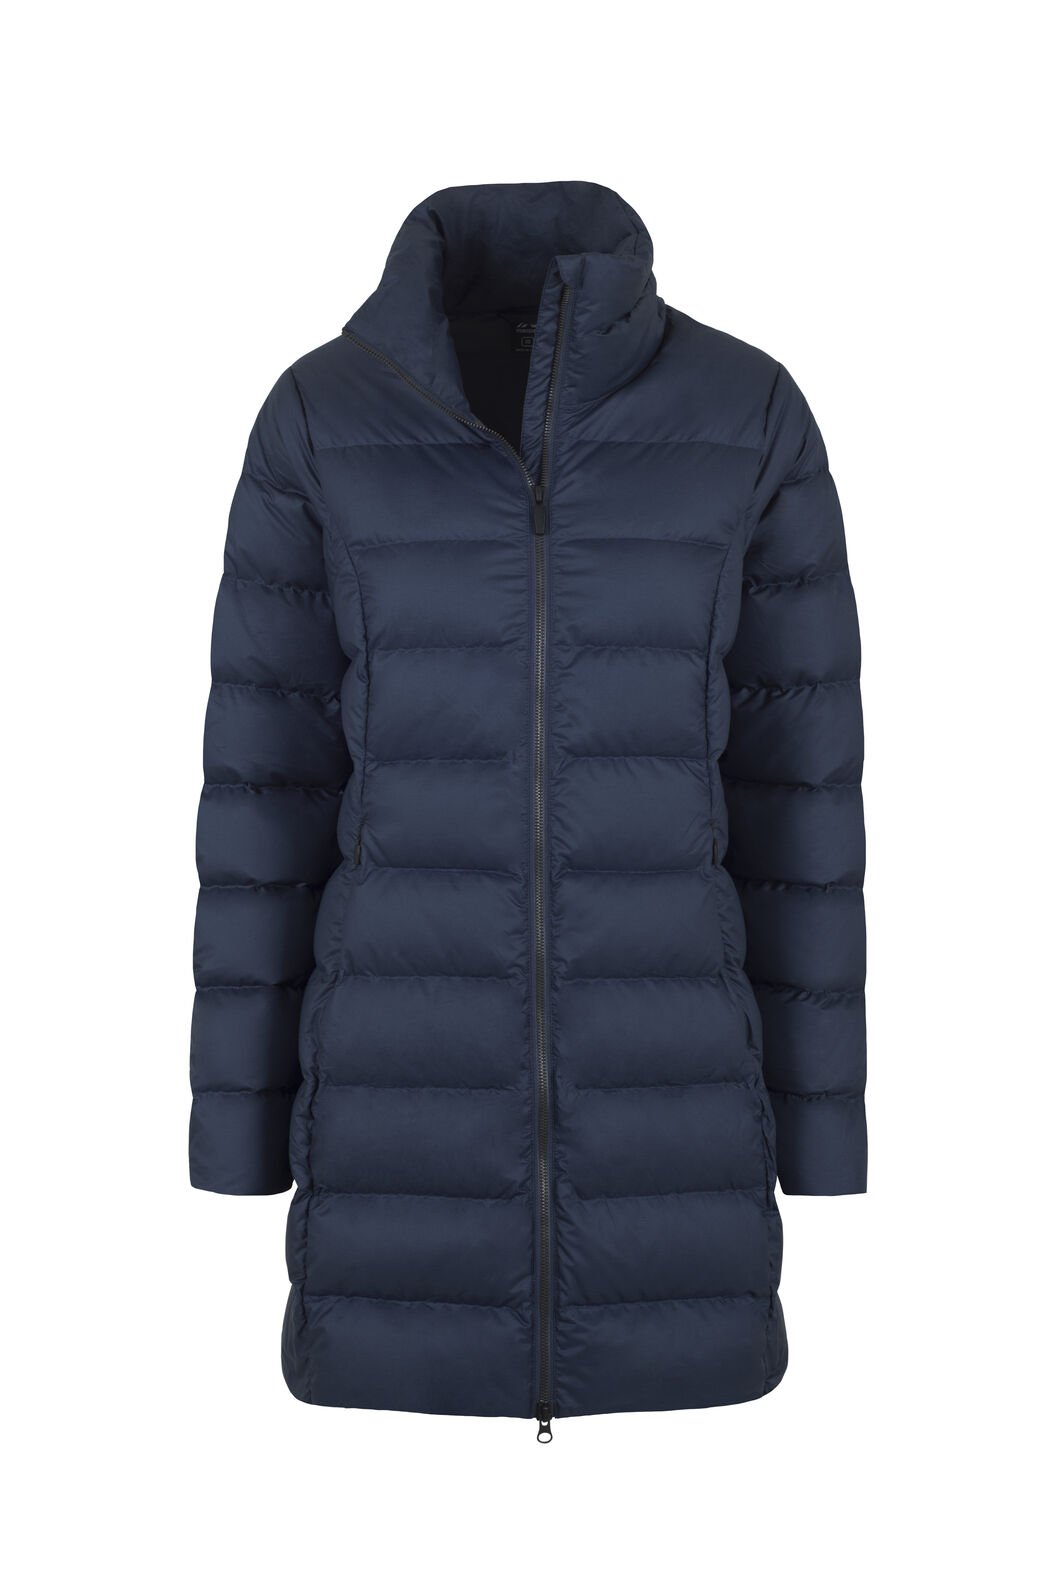 Macpac Demi Down Coat - Women's, Black Iris, hi-res